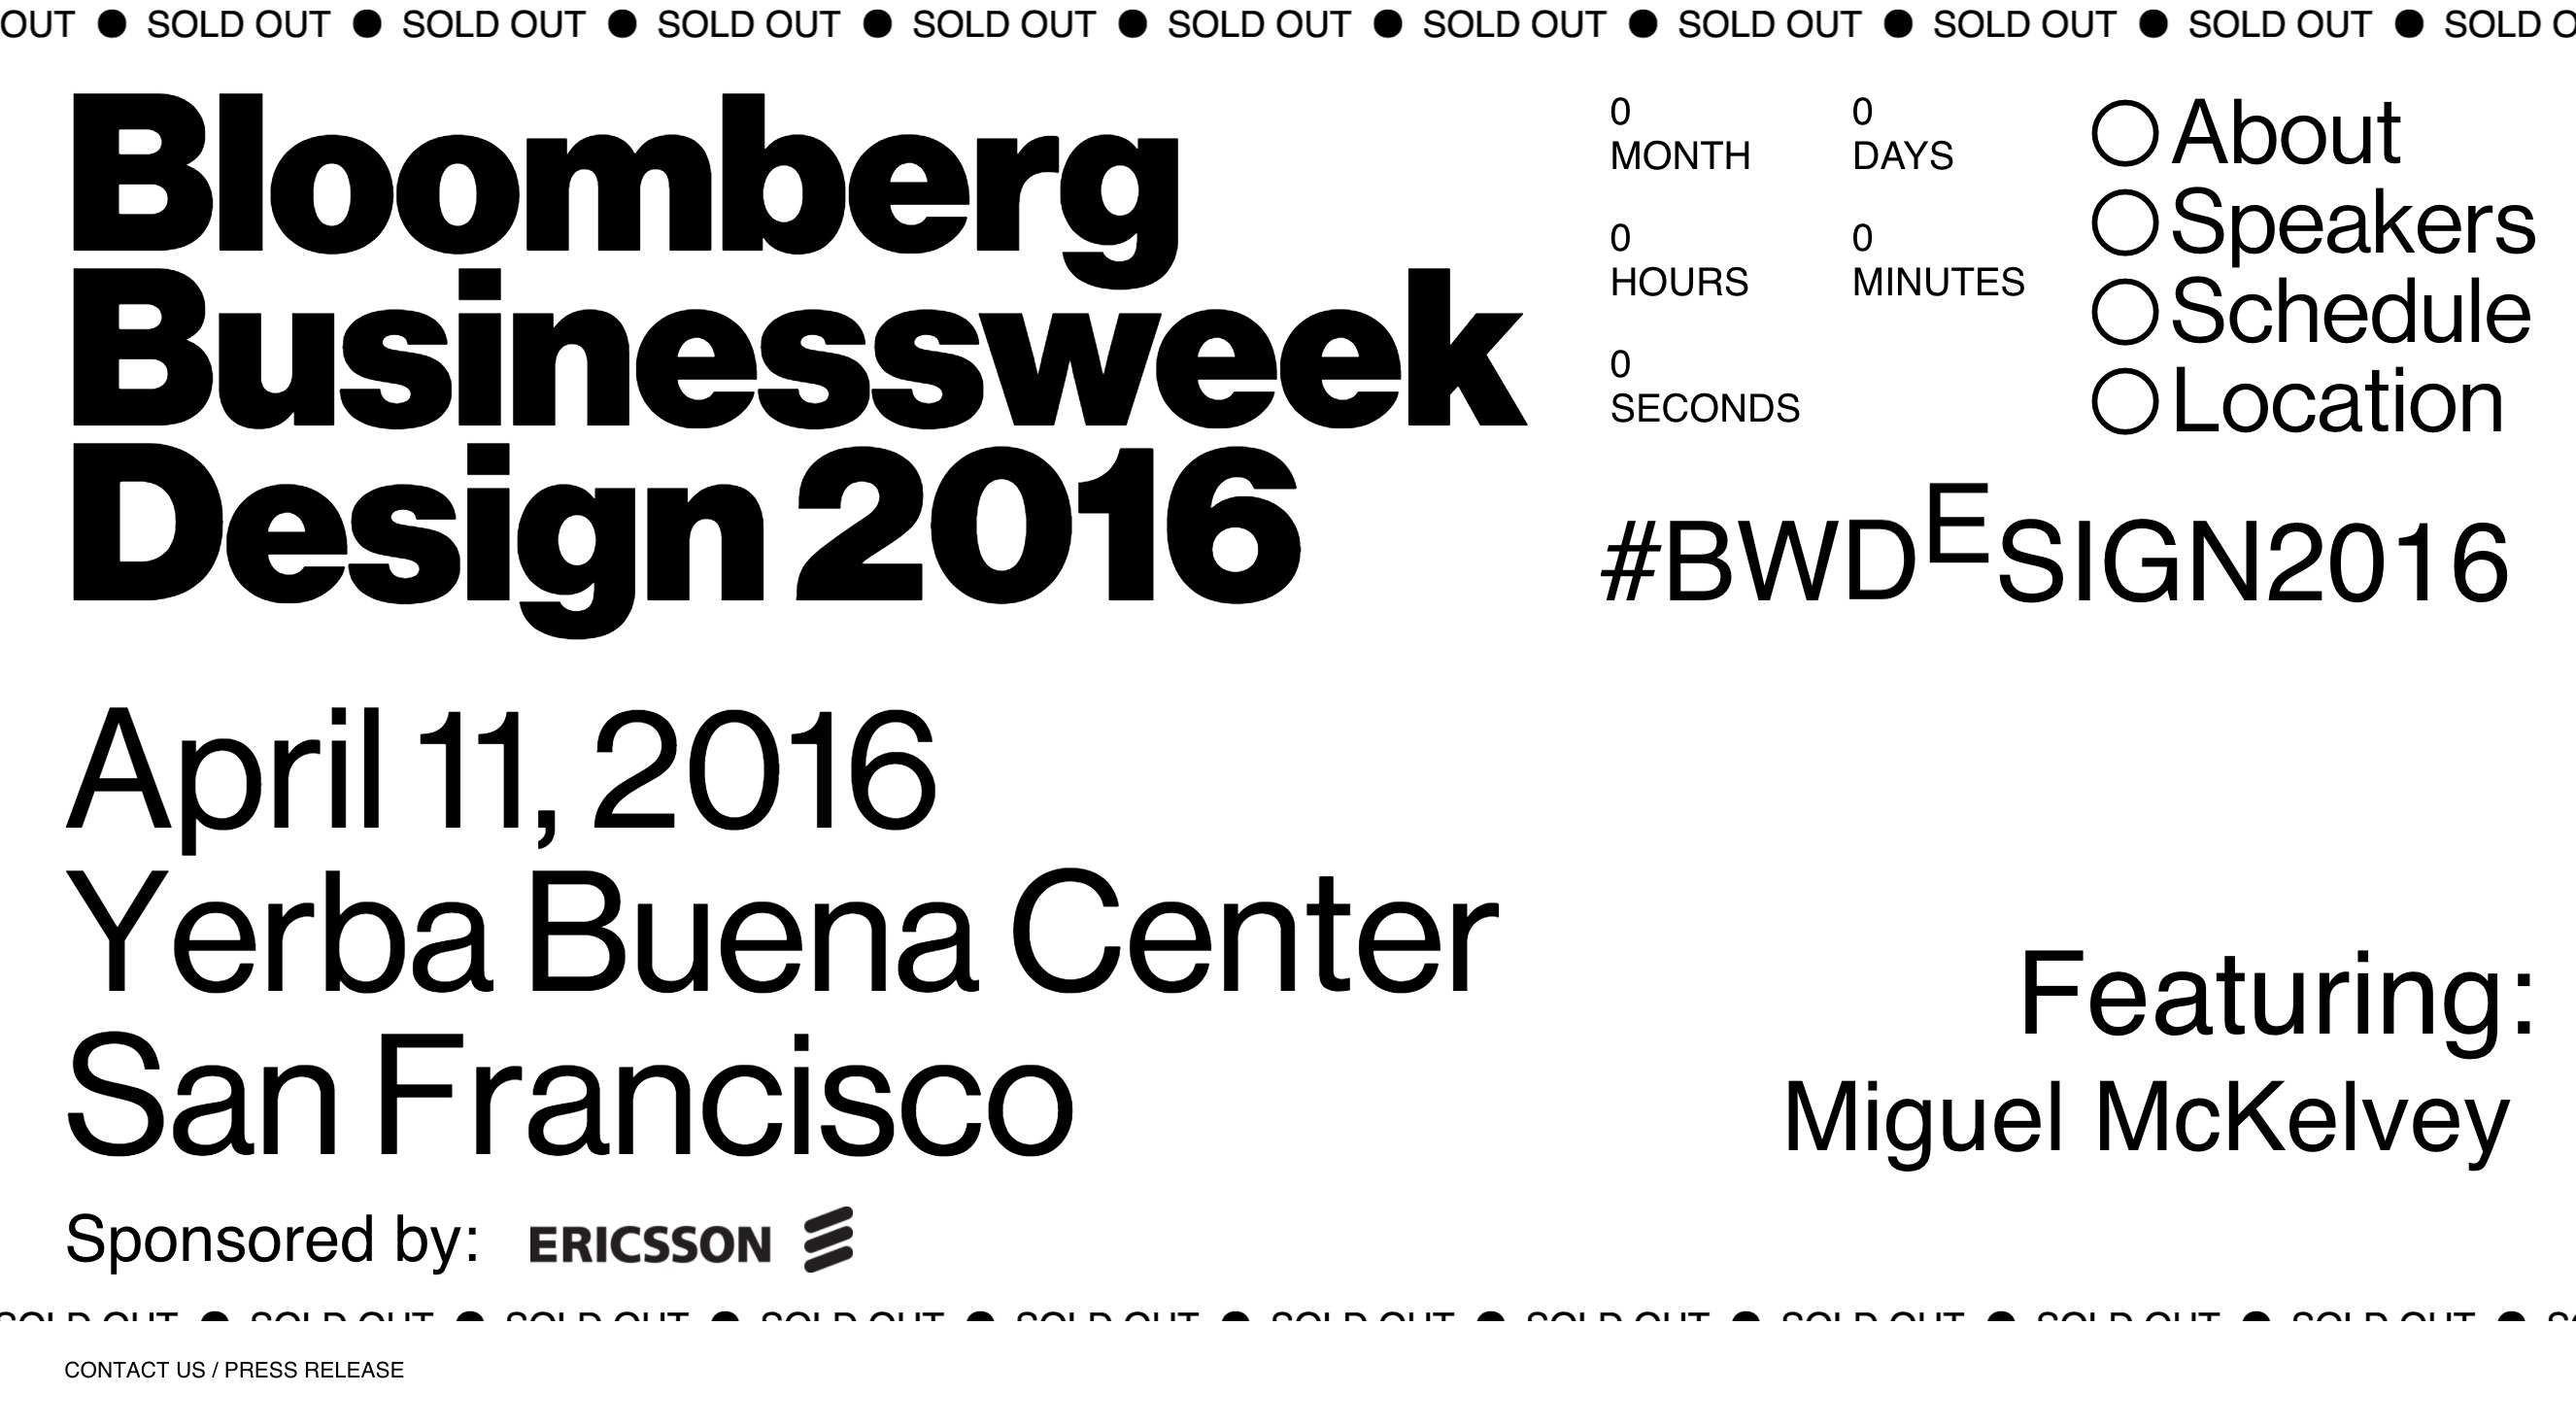 bloomberg-businessweek-design-2016